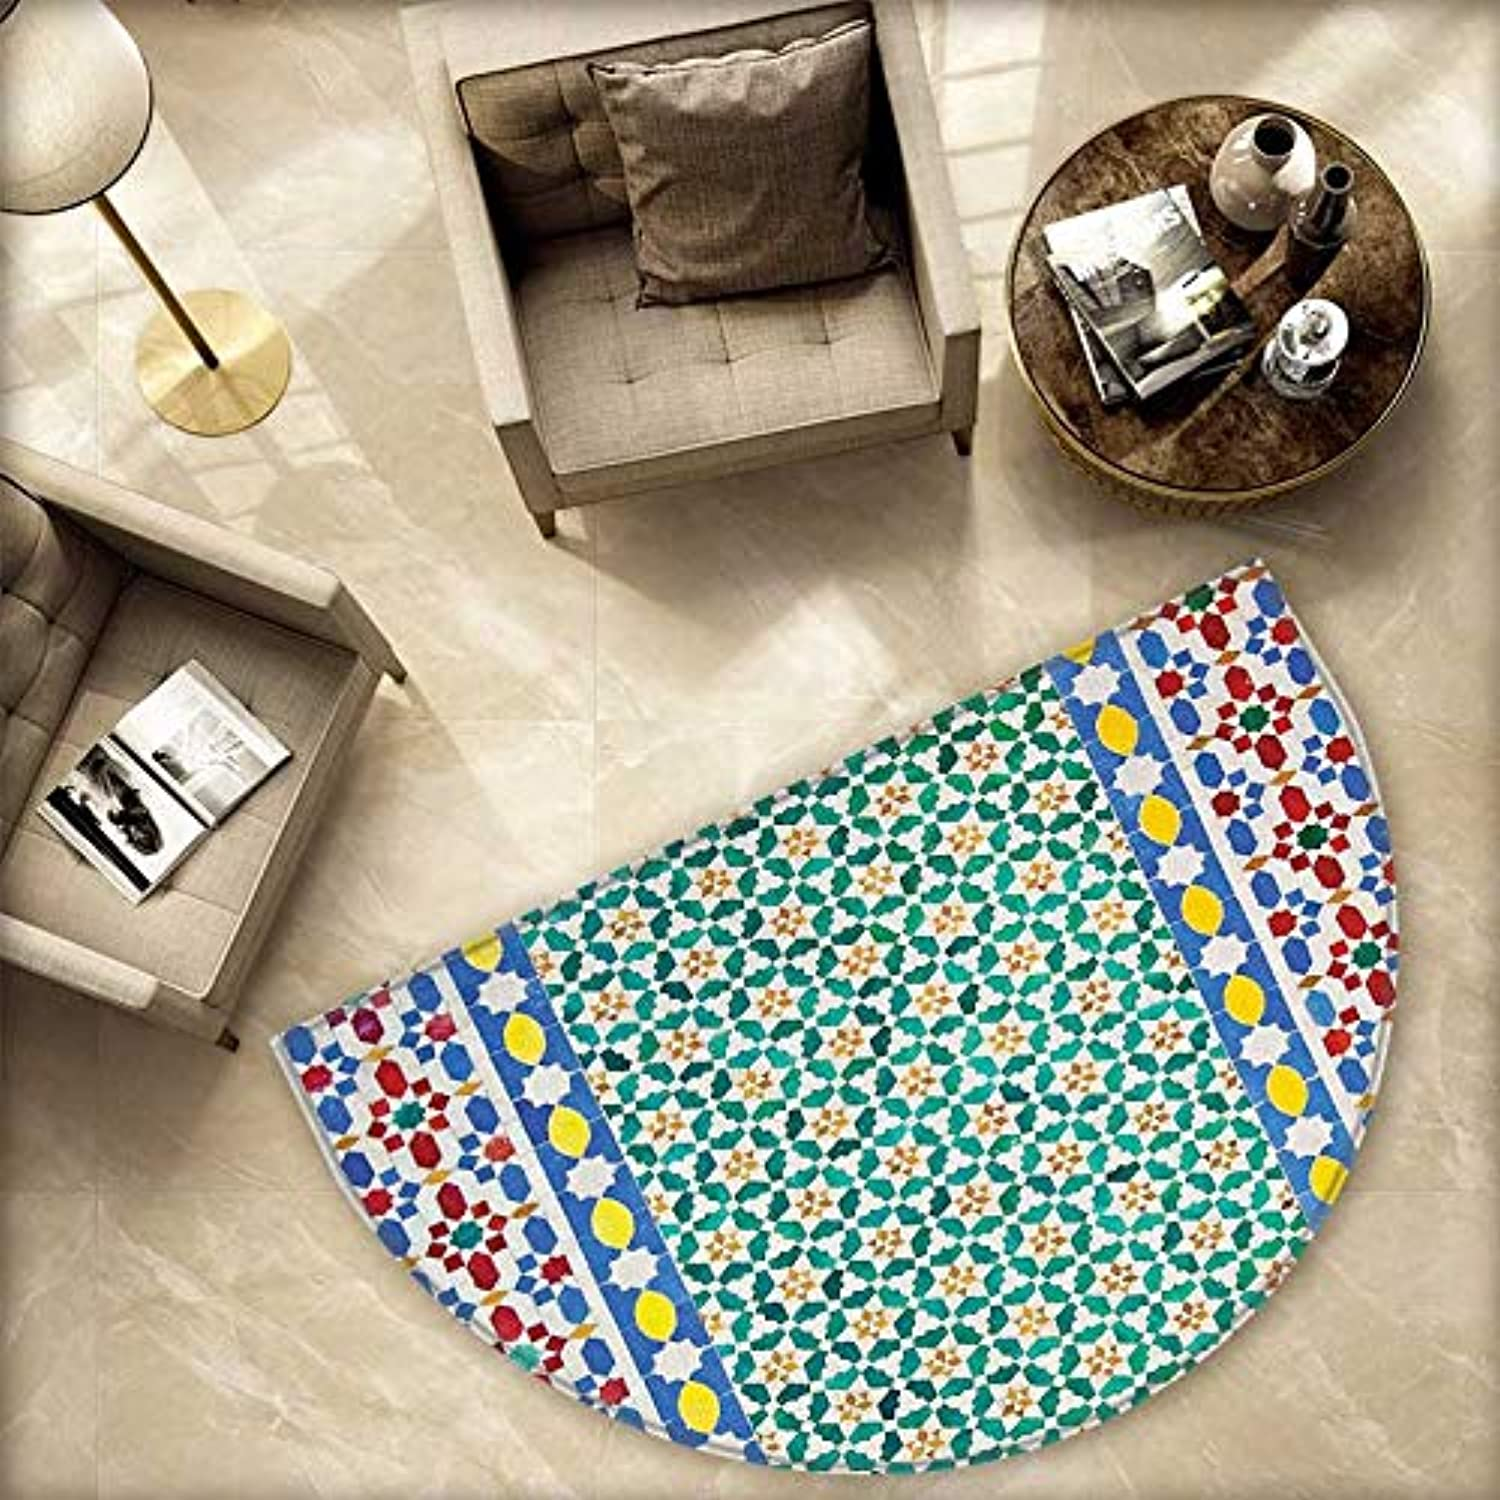 Mgoldccan Semicircle Doormat colorful Mgoldccan Mosaic Wall Middle East Style Craftsmanship greenical Details Halfmoon doormats H 78.7  xD 118.1  Multicolor